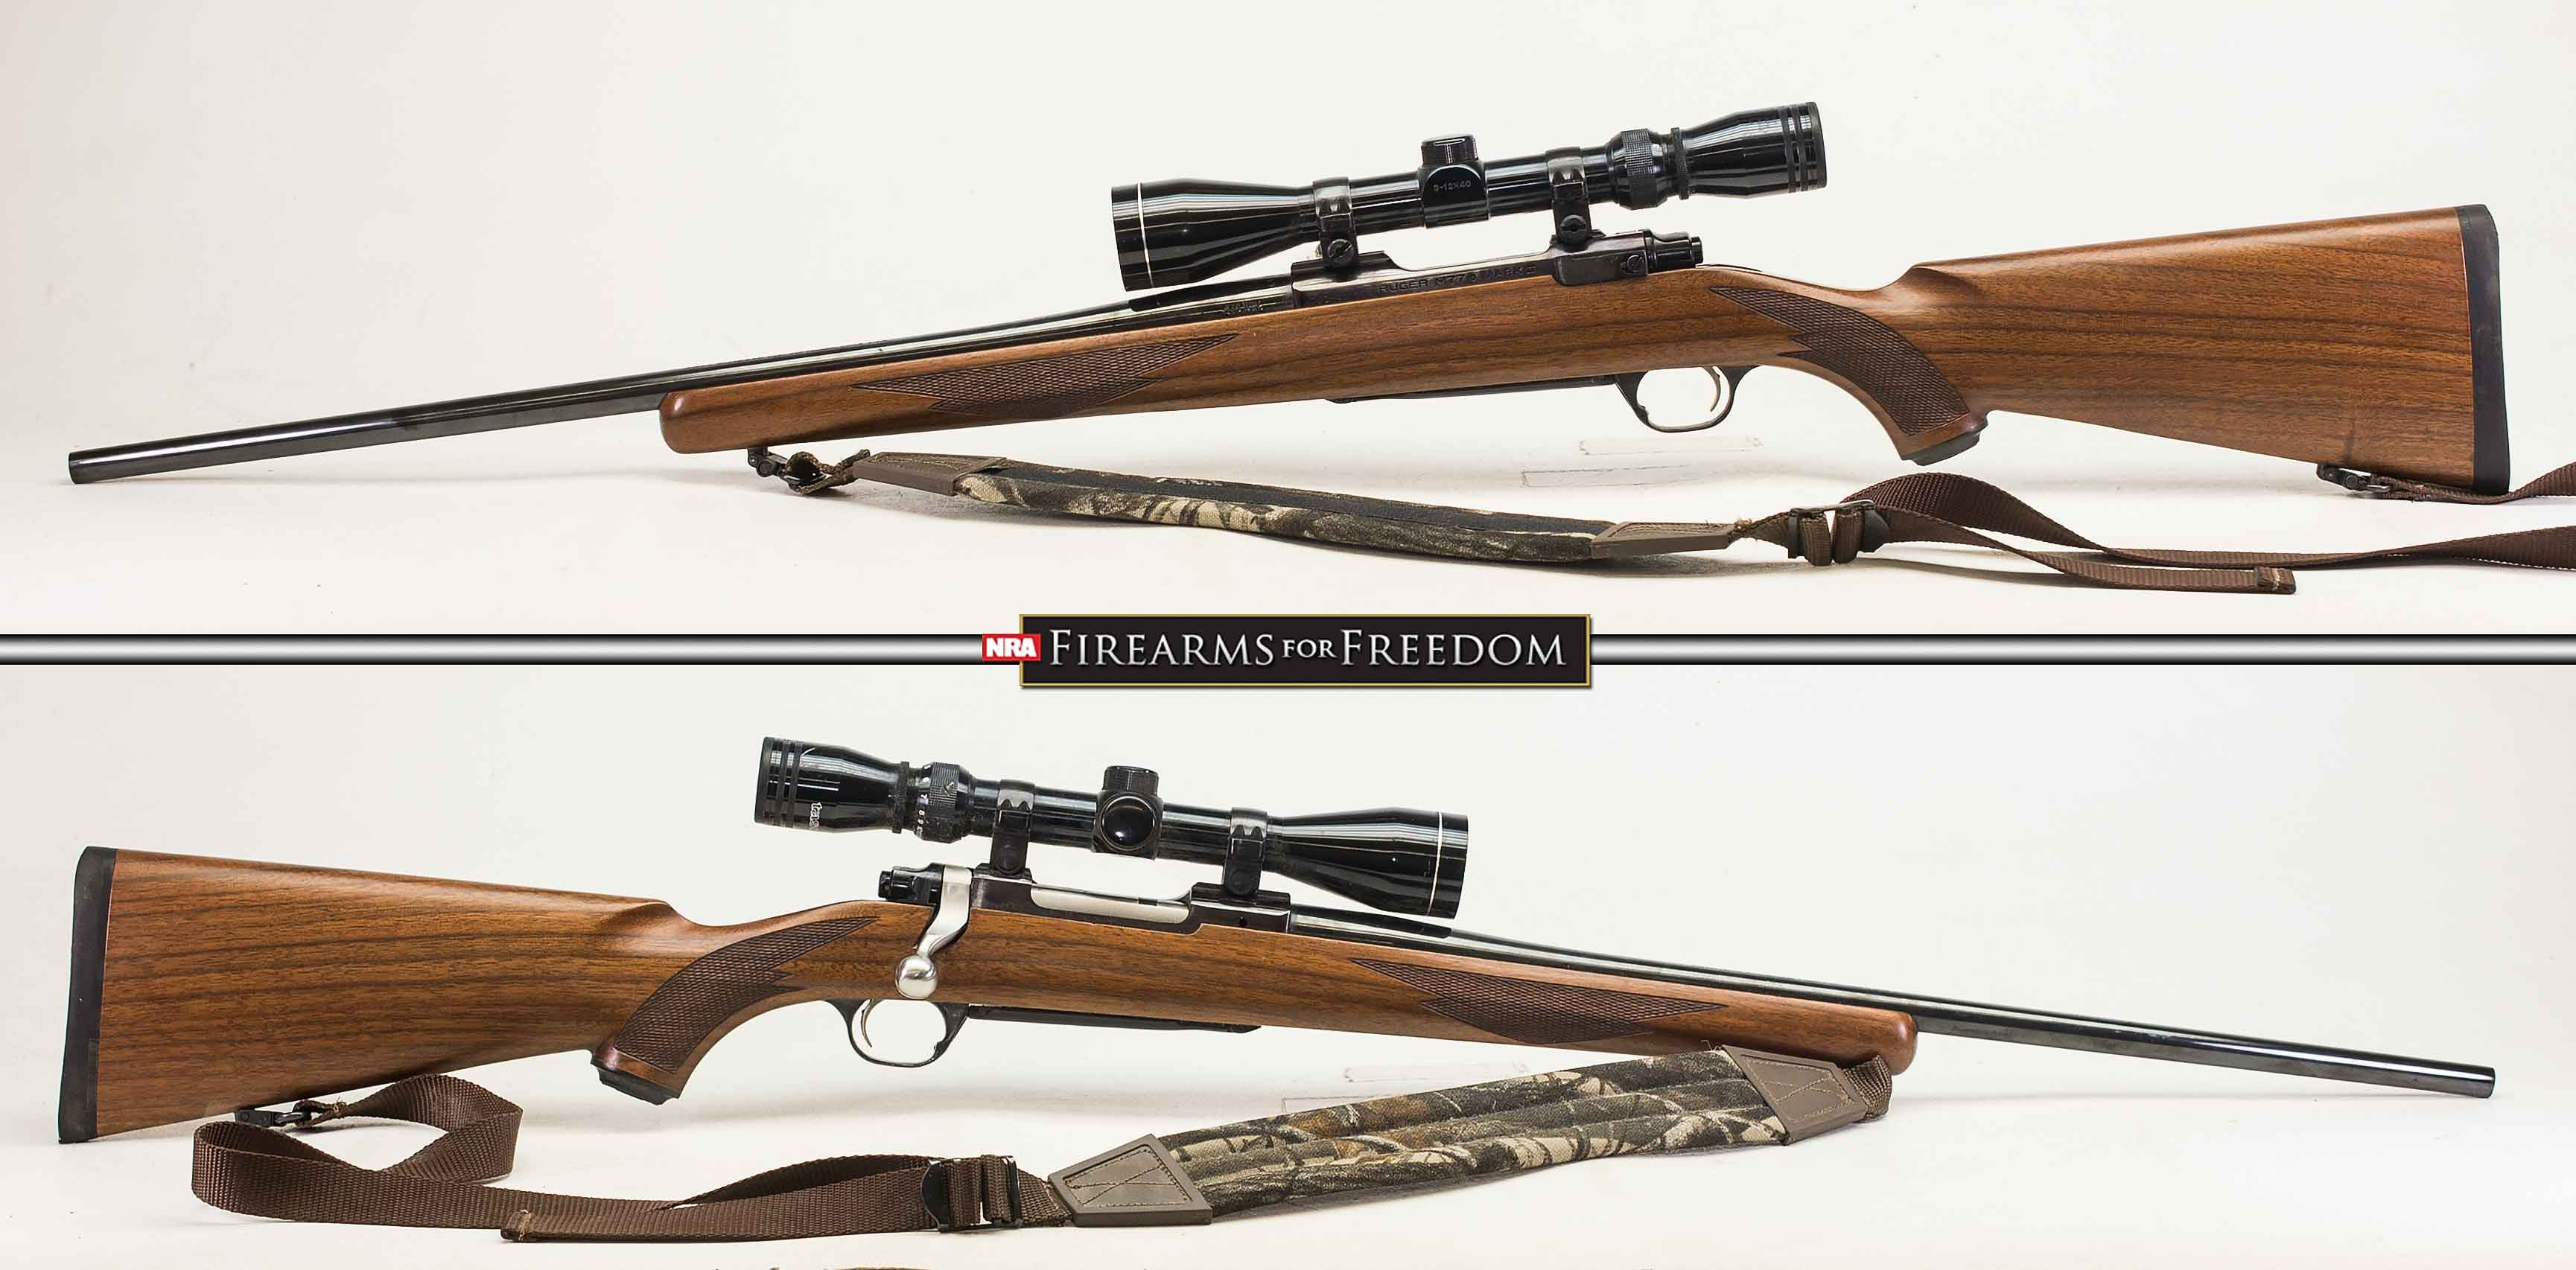 RUGER M77 MARK II – 243 WIN (Auction ID: 12471931, End Time : Sep